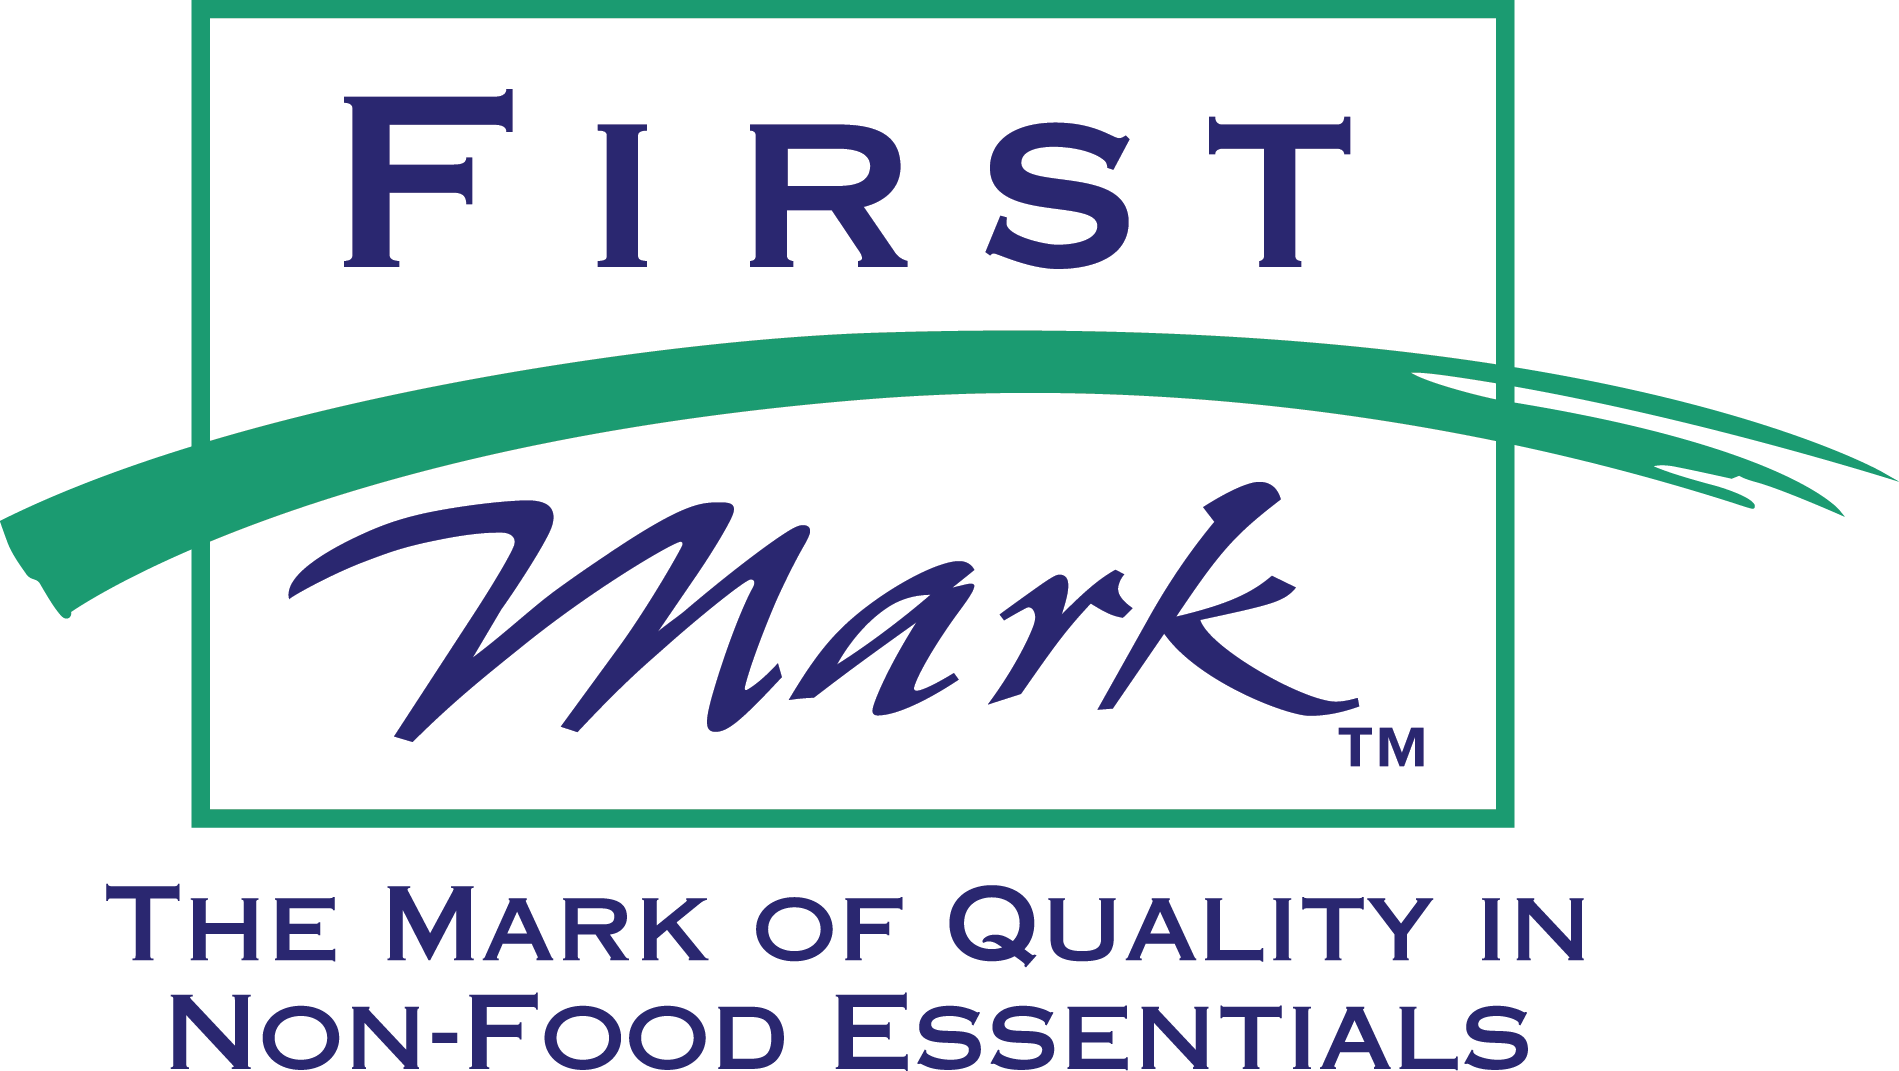 FIRSTMARK_color.png